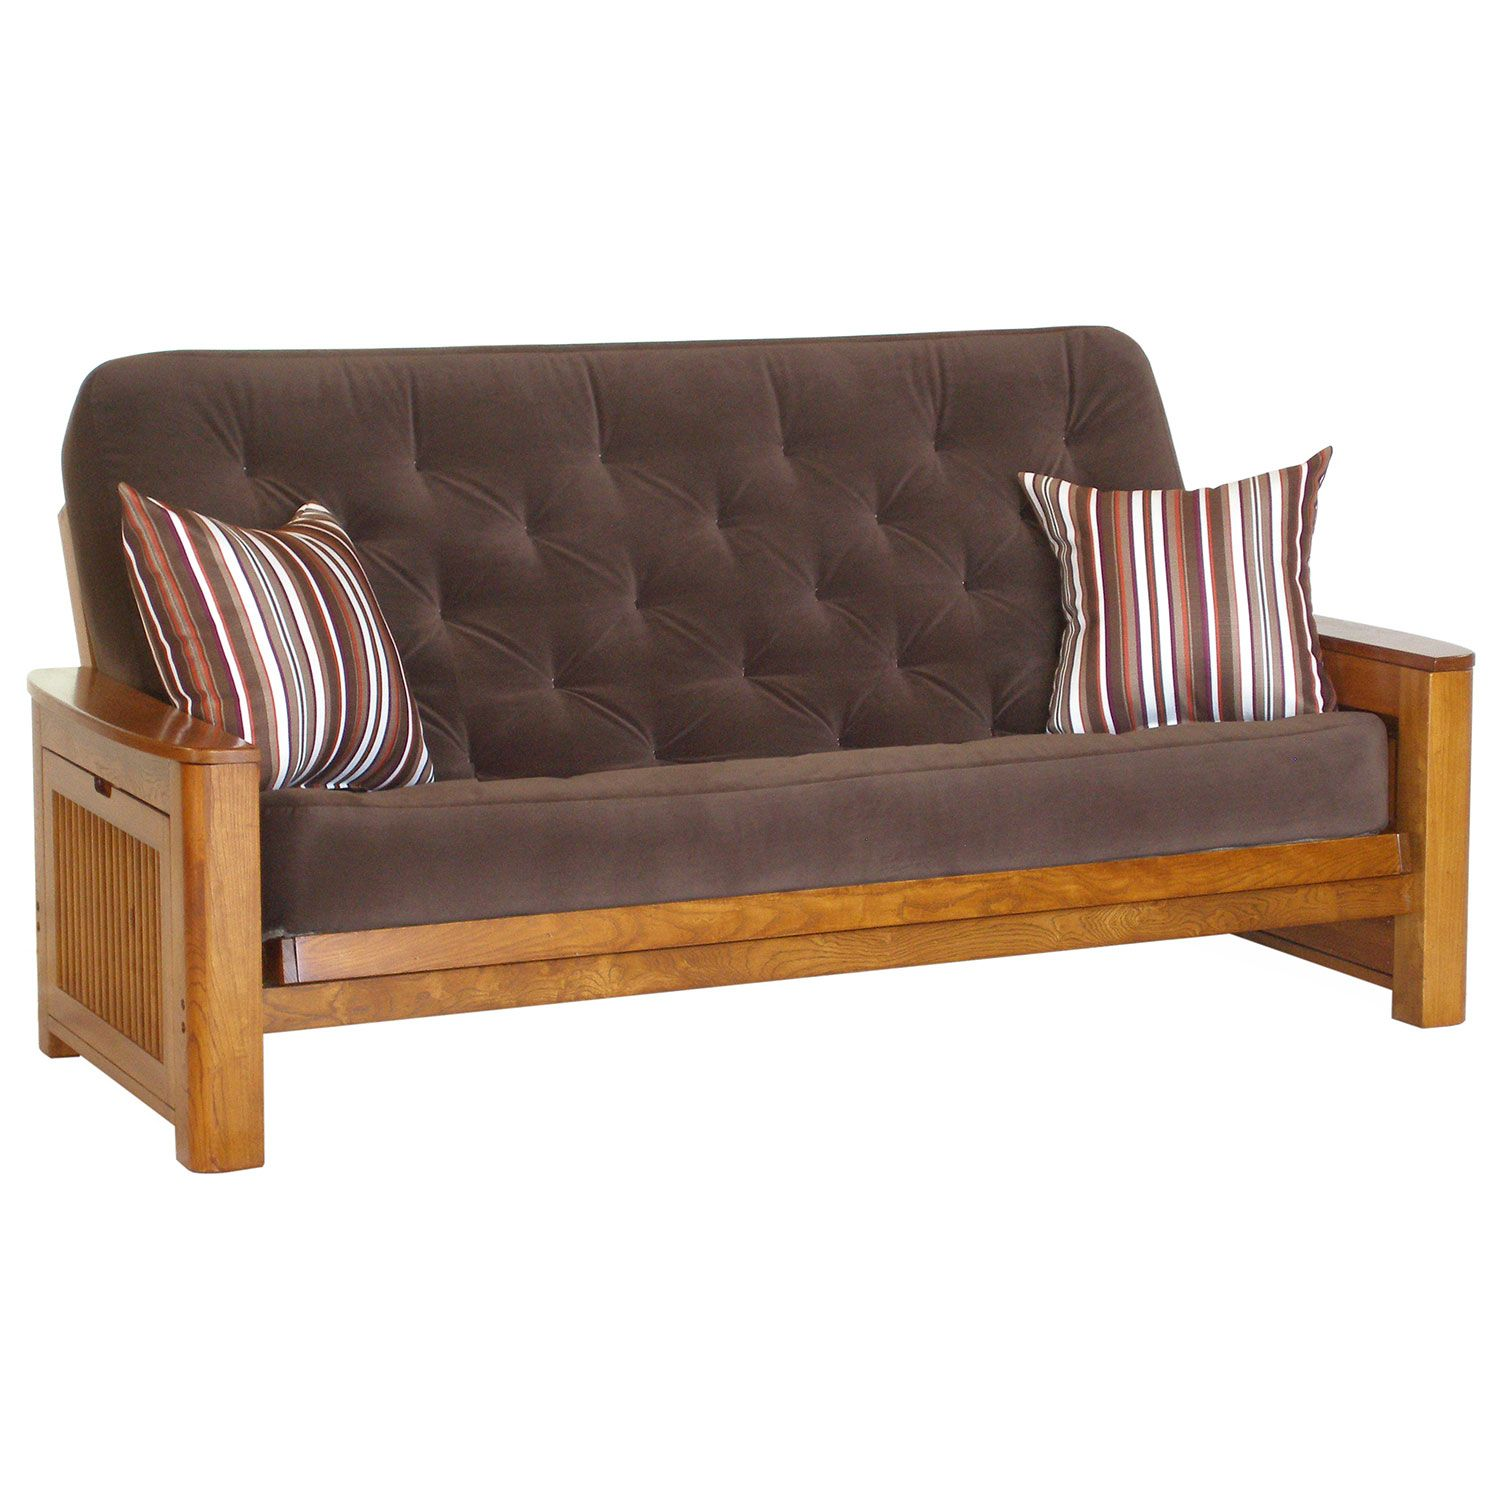 Exquisite Furniture in the Living room cheap futons for sale